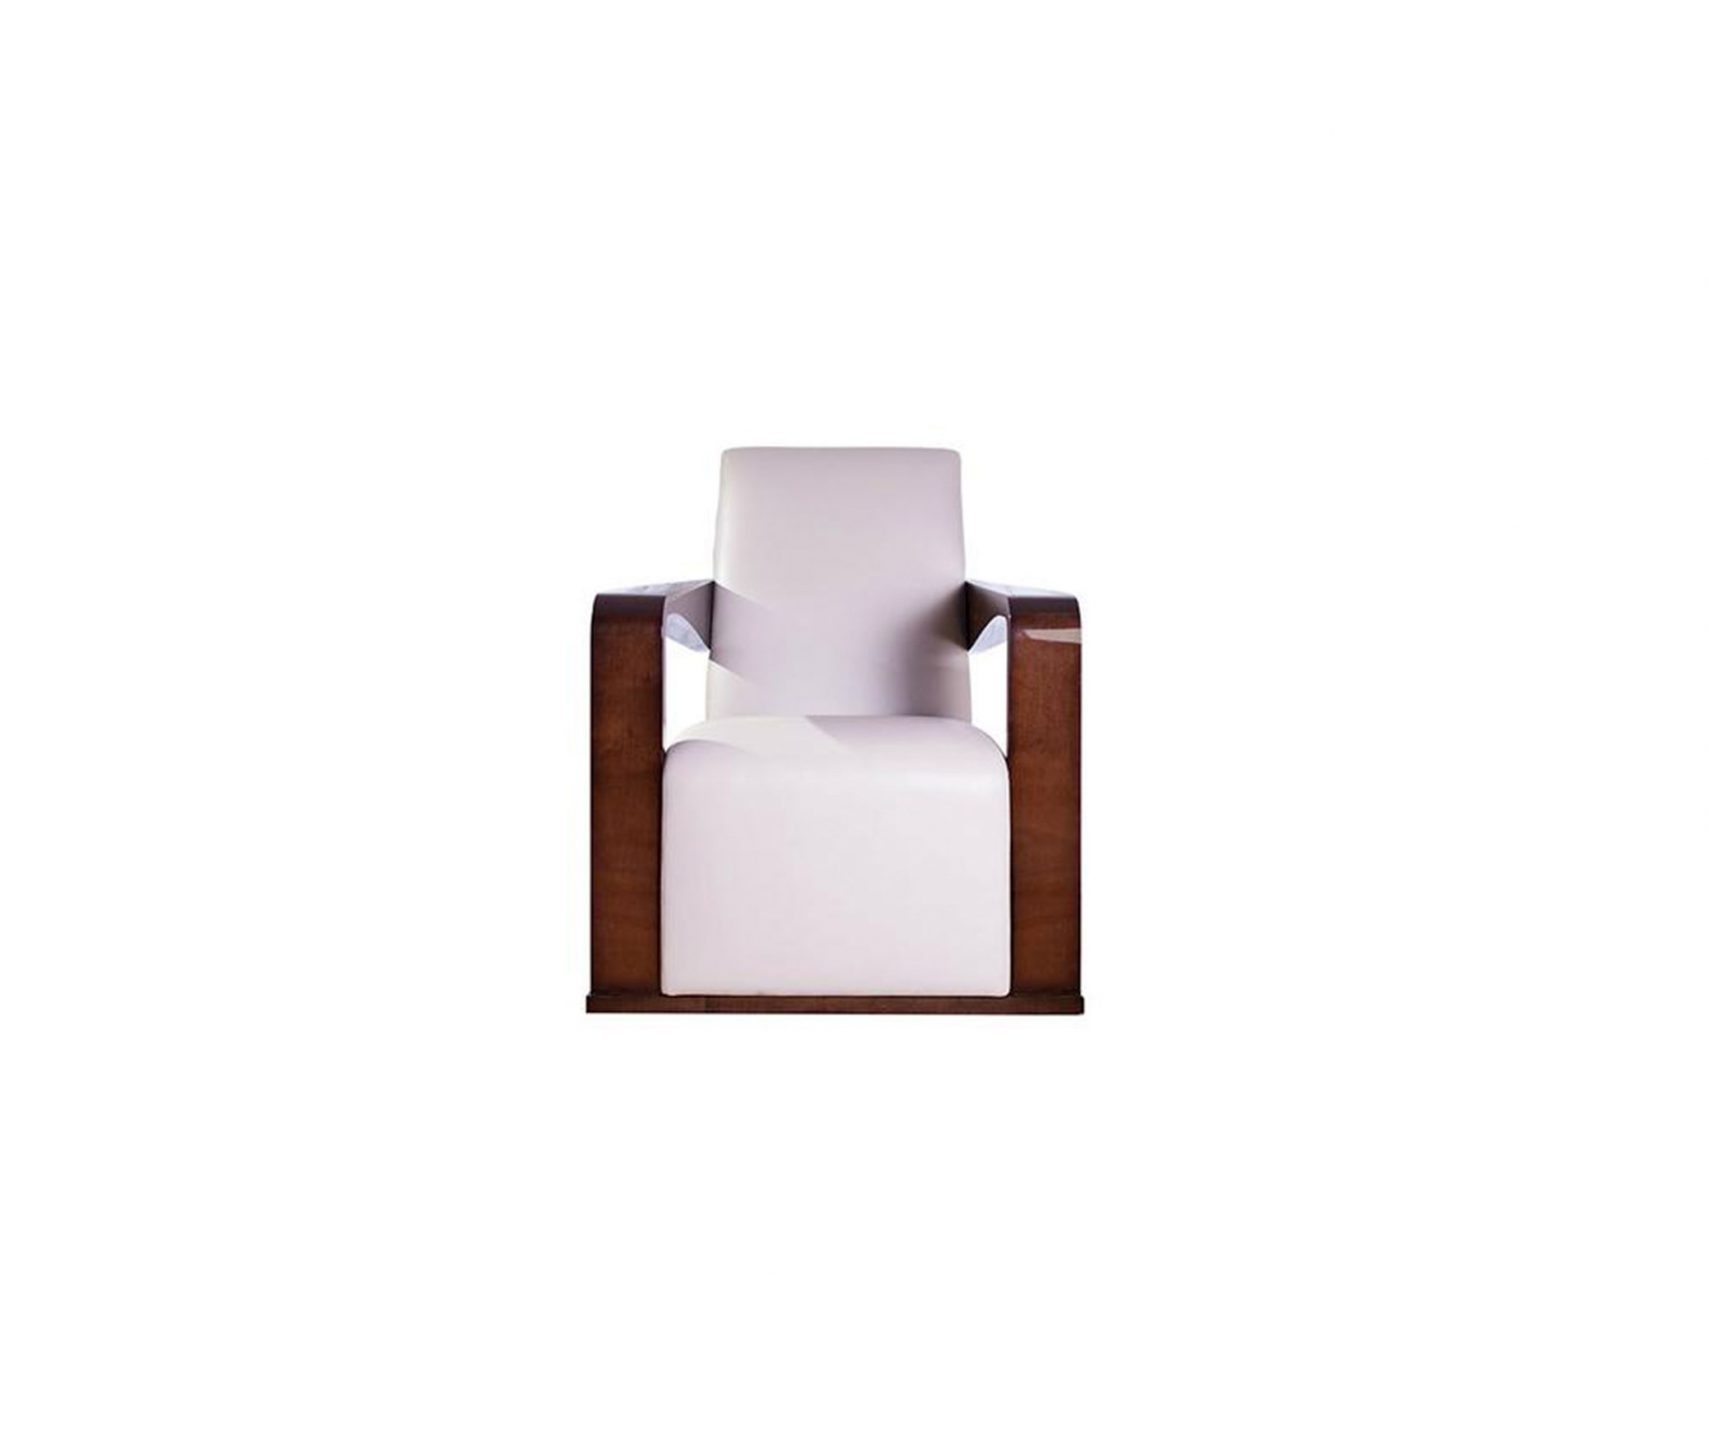 Profiles_Ying-Lounge-Chair-2_int_products